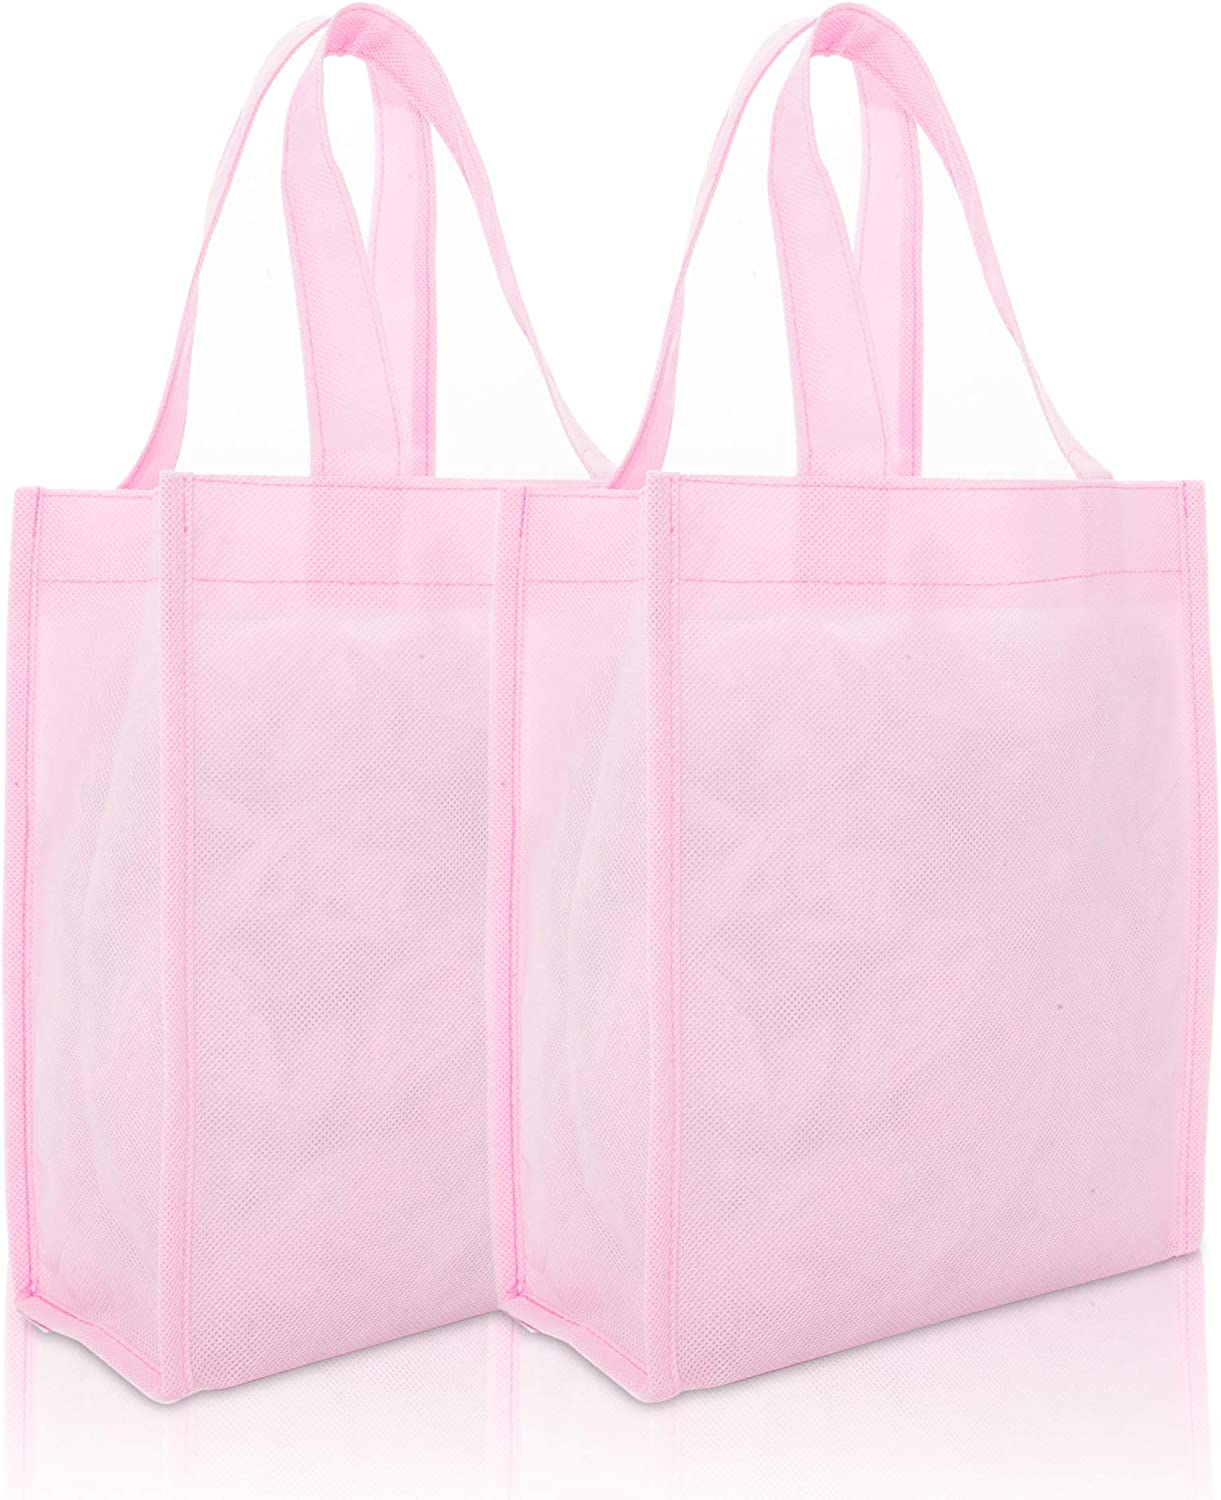 "DALIX 10"" Mini Shopping Totes Small Resuseable Bags for Women and Children in Pink-2 PACK"